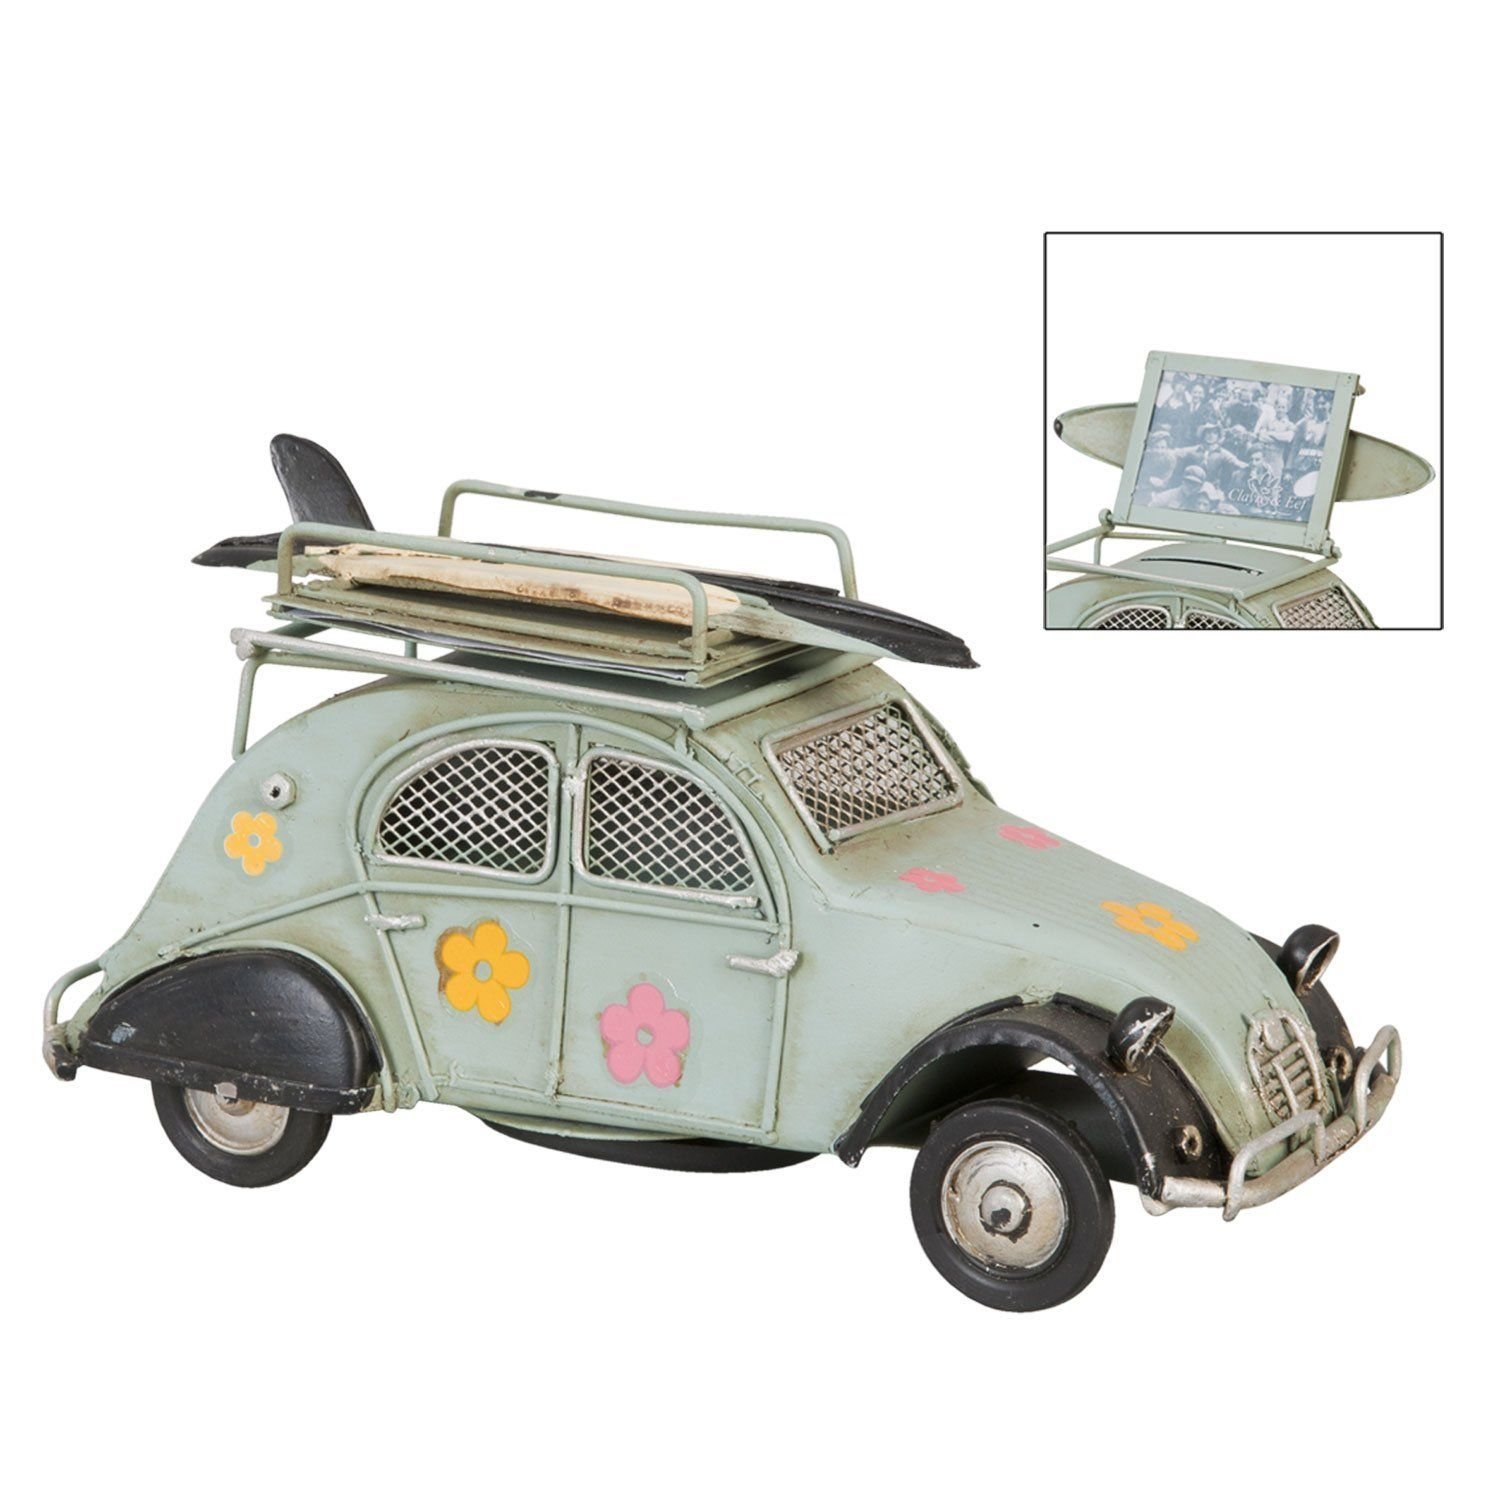 ente citroen 2cv 1956 hippie blumen 70er blechauto retro vintage modellauto nostalgie oldtimer. Black Bedroom Furniture Sets. Home Design Ideas